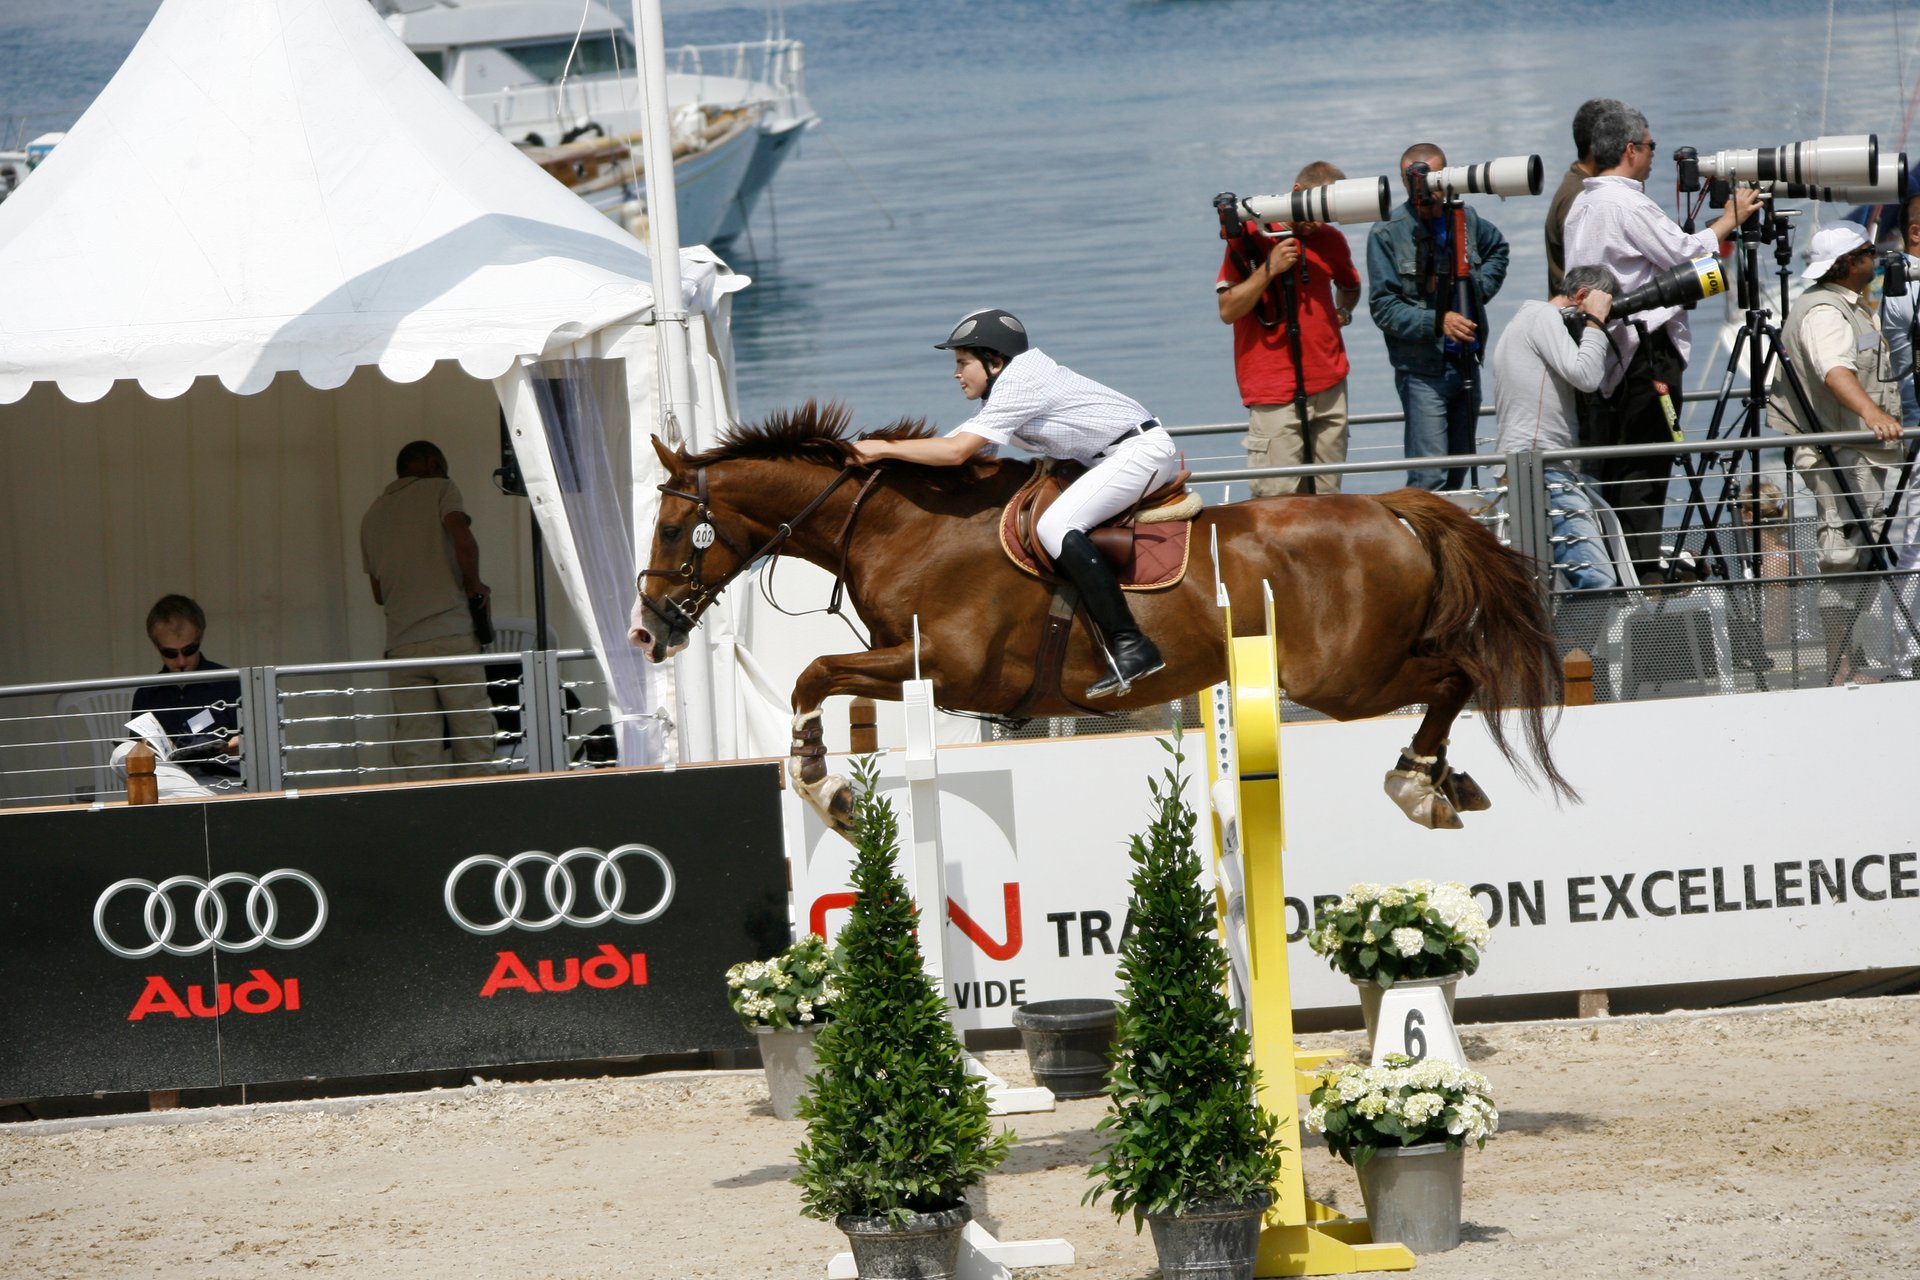 Monte-Carlo International Jumping in Monaco 2020 - Best Time